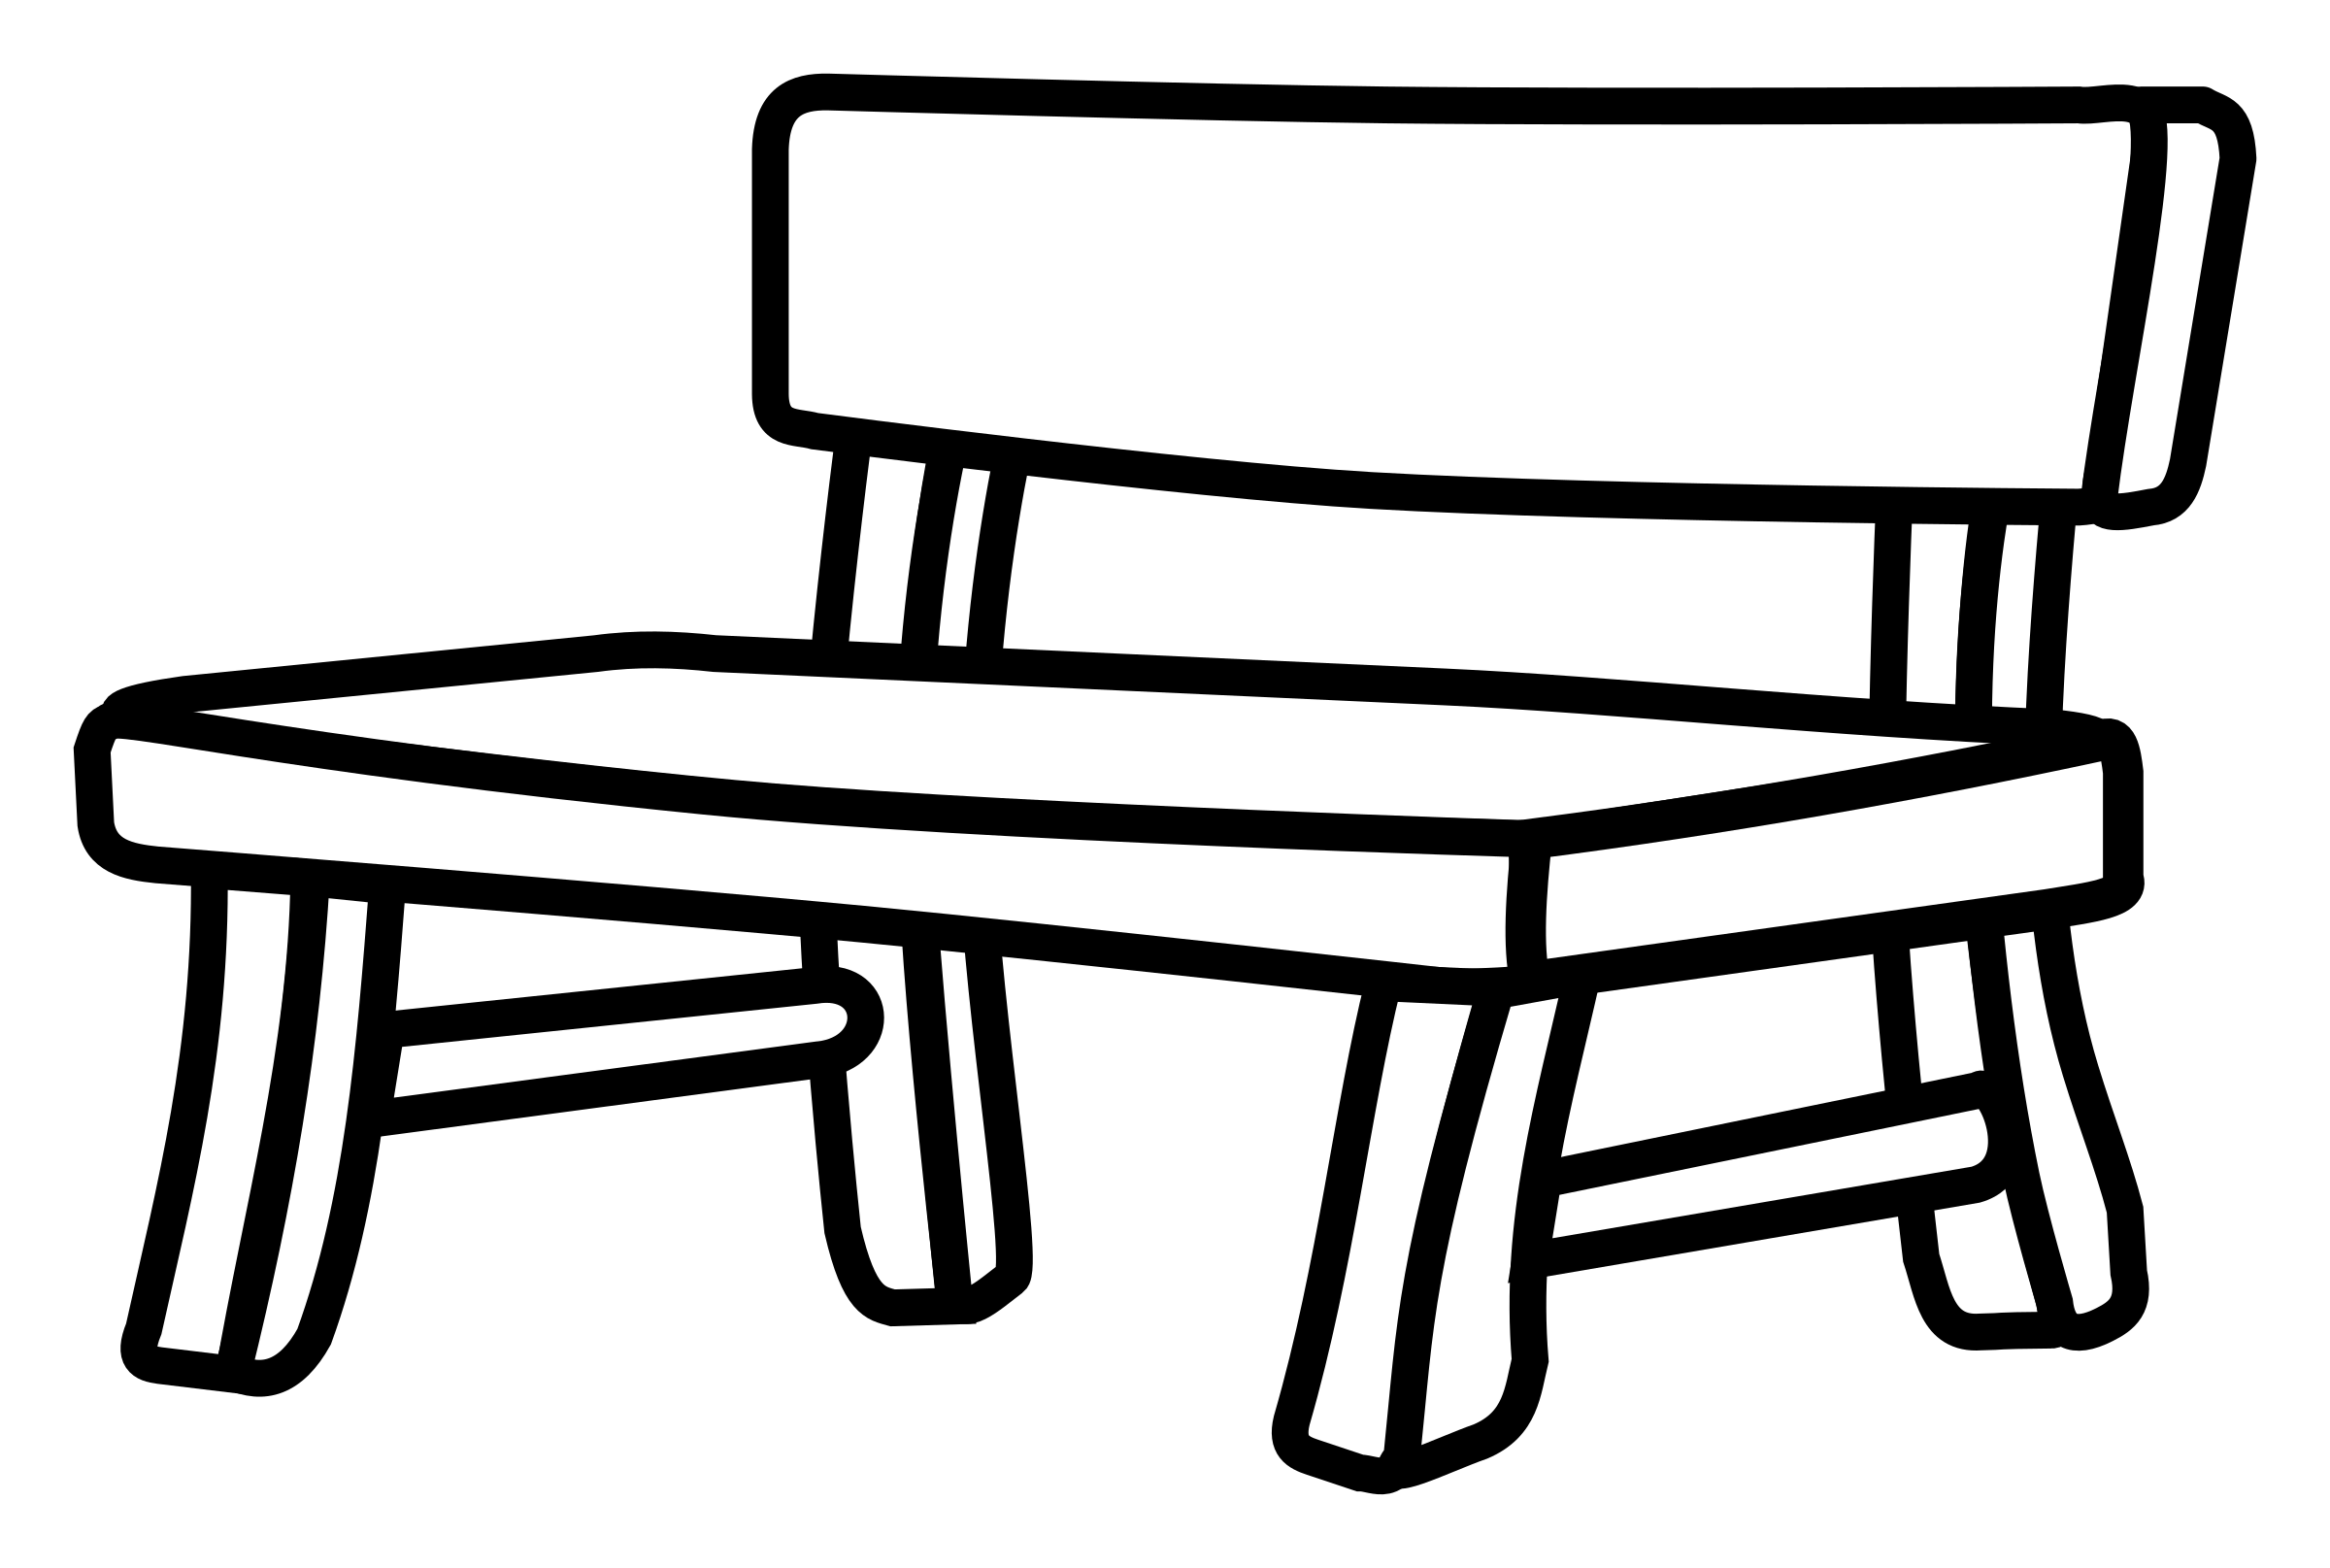 Sitting on bench clipart balck and white vector freeuse library Park Bench Drawing | Free download best Park Bench Drawing ... vector freeuse library